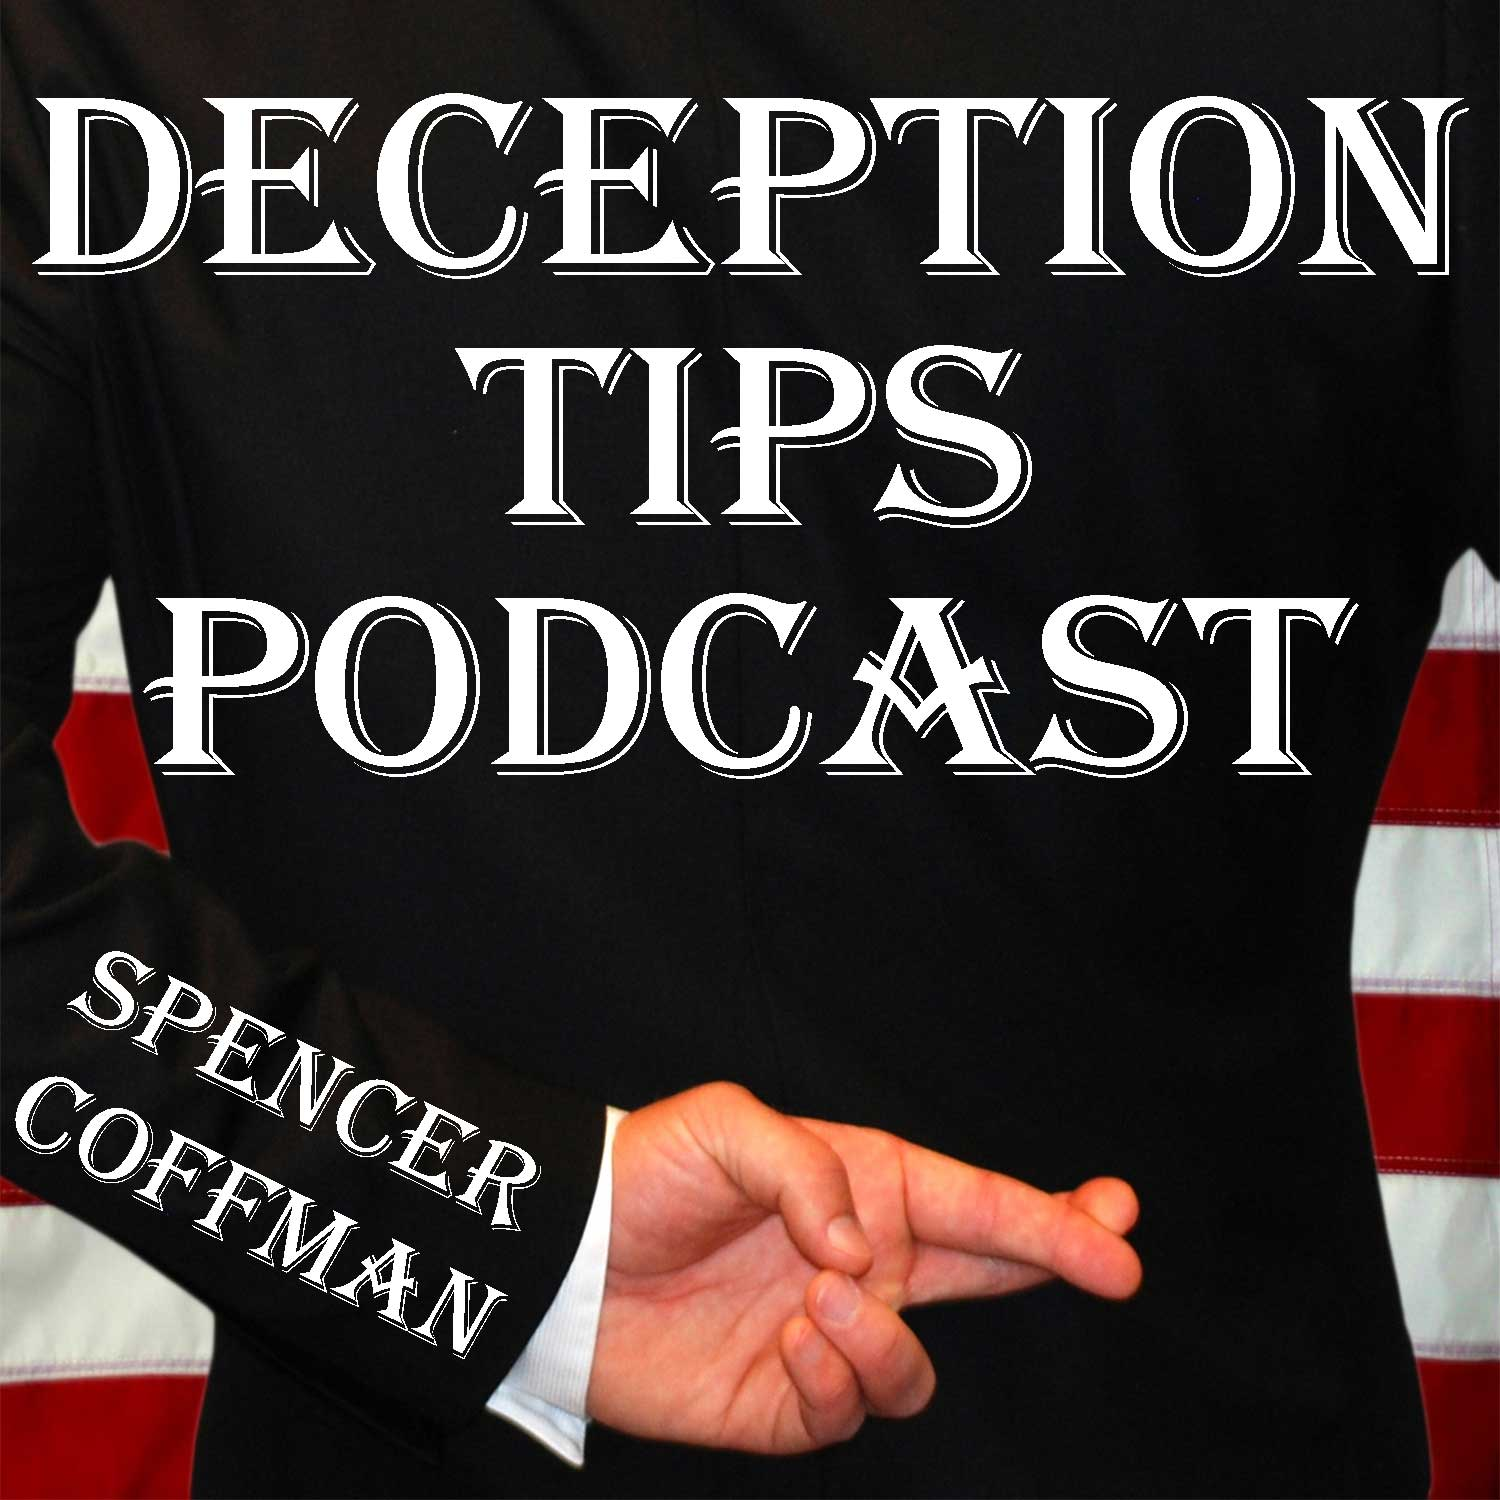 Deception Tips Podcast Spencer Coffman